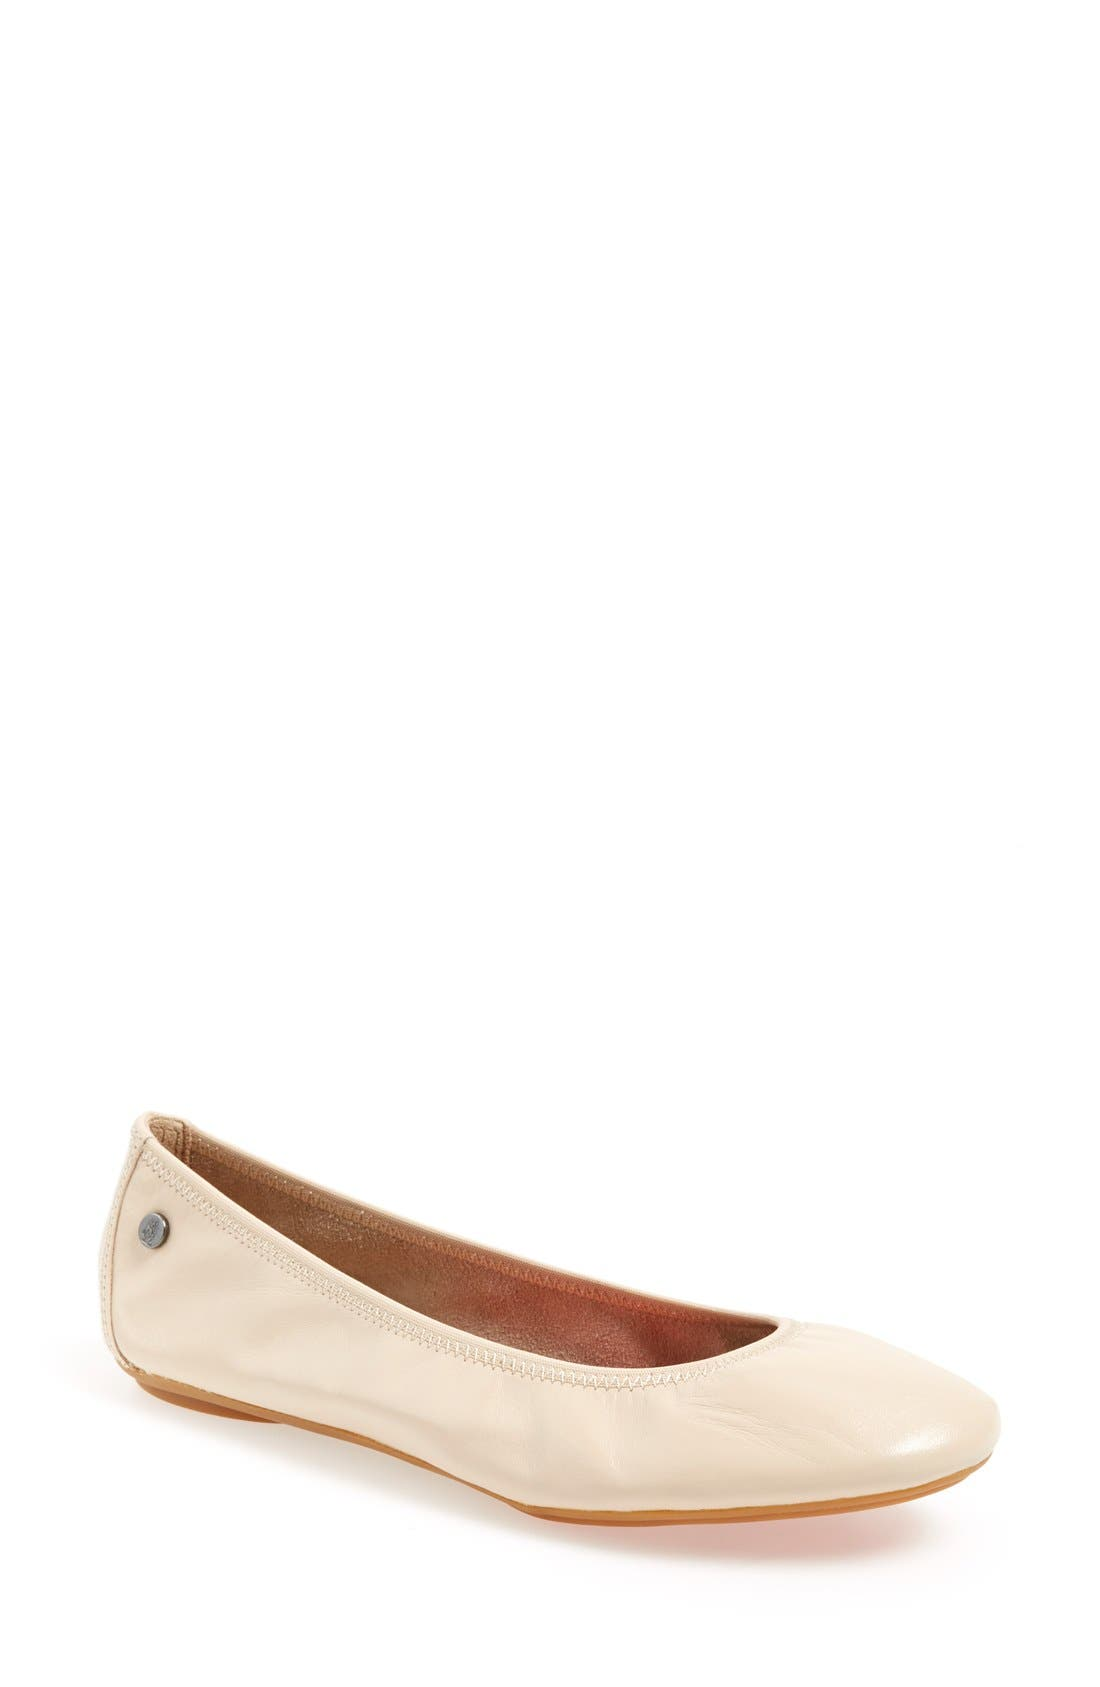 'Chaste' Ballet Flat,                         Main,                         color, Nude Leather